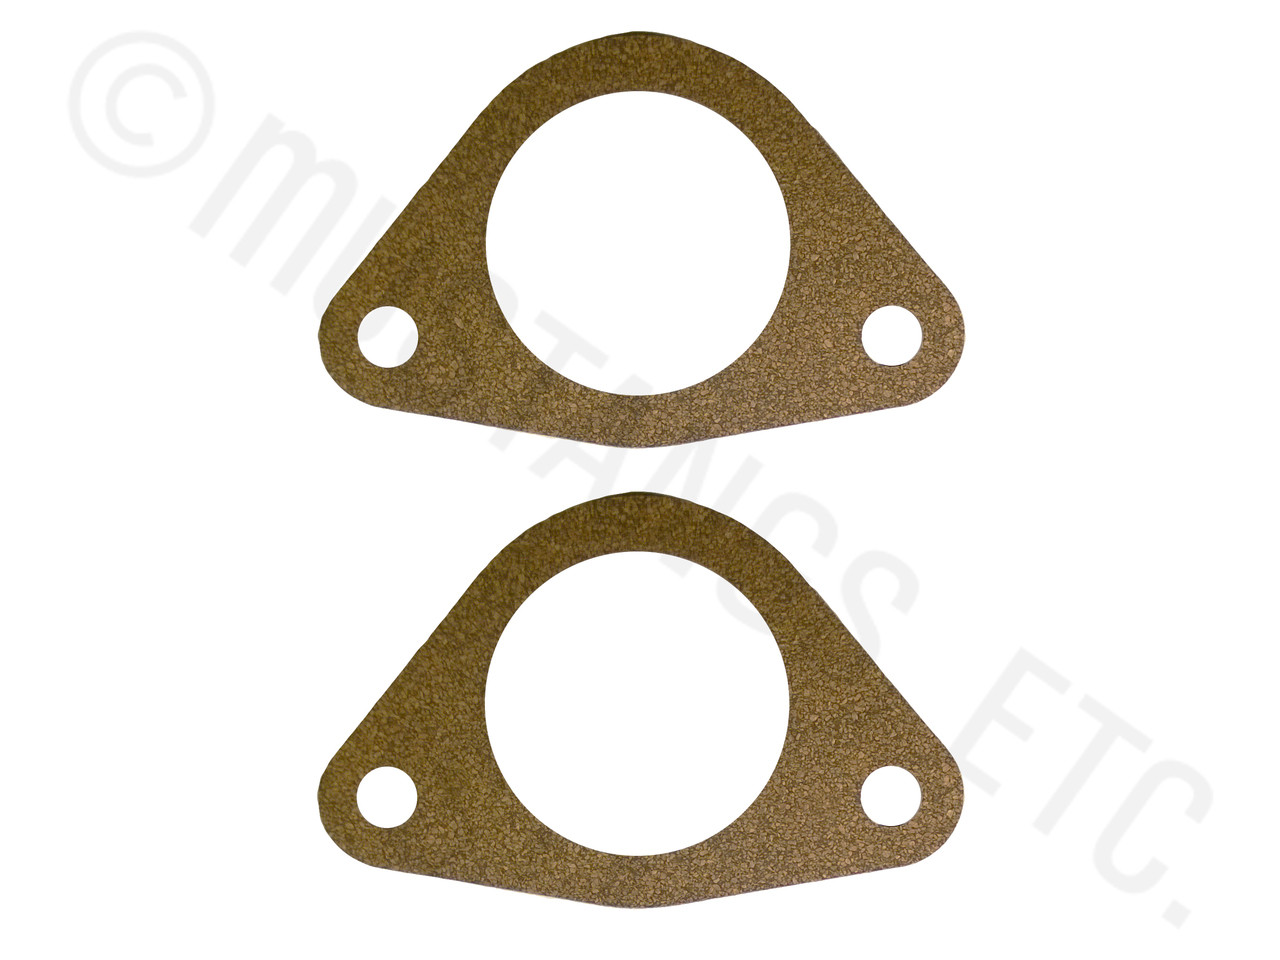 1957 1972 Full Size Ford Front Drum Brake Backing Plate Gaskets 1970 F250 Rear Axle Nut Socket Image 1